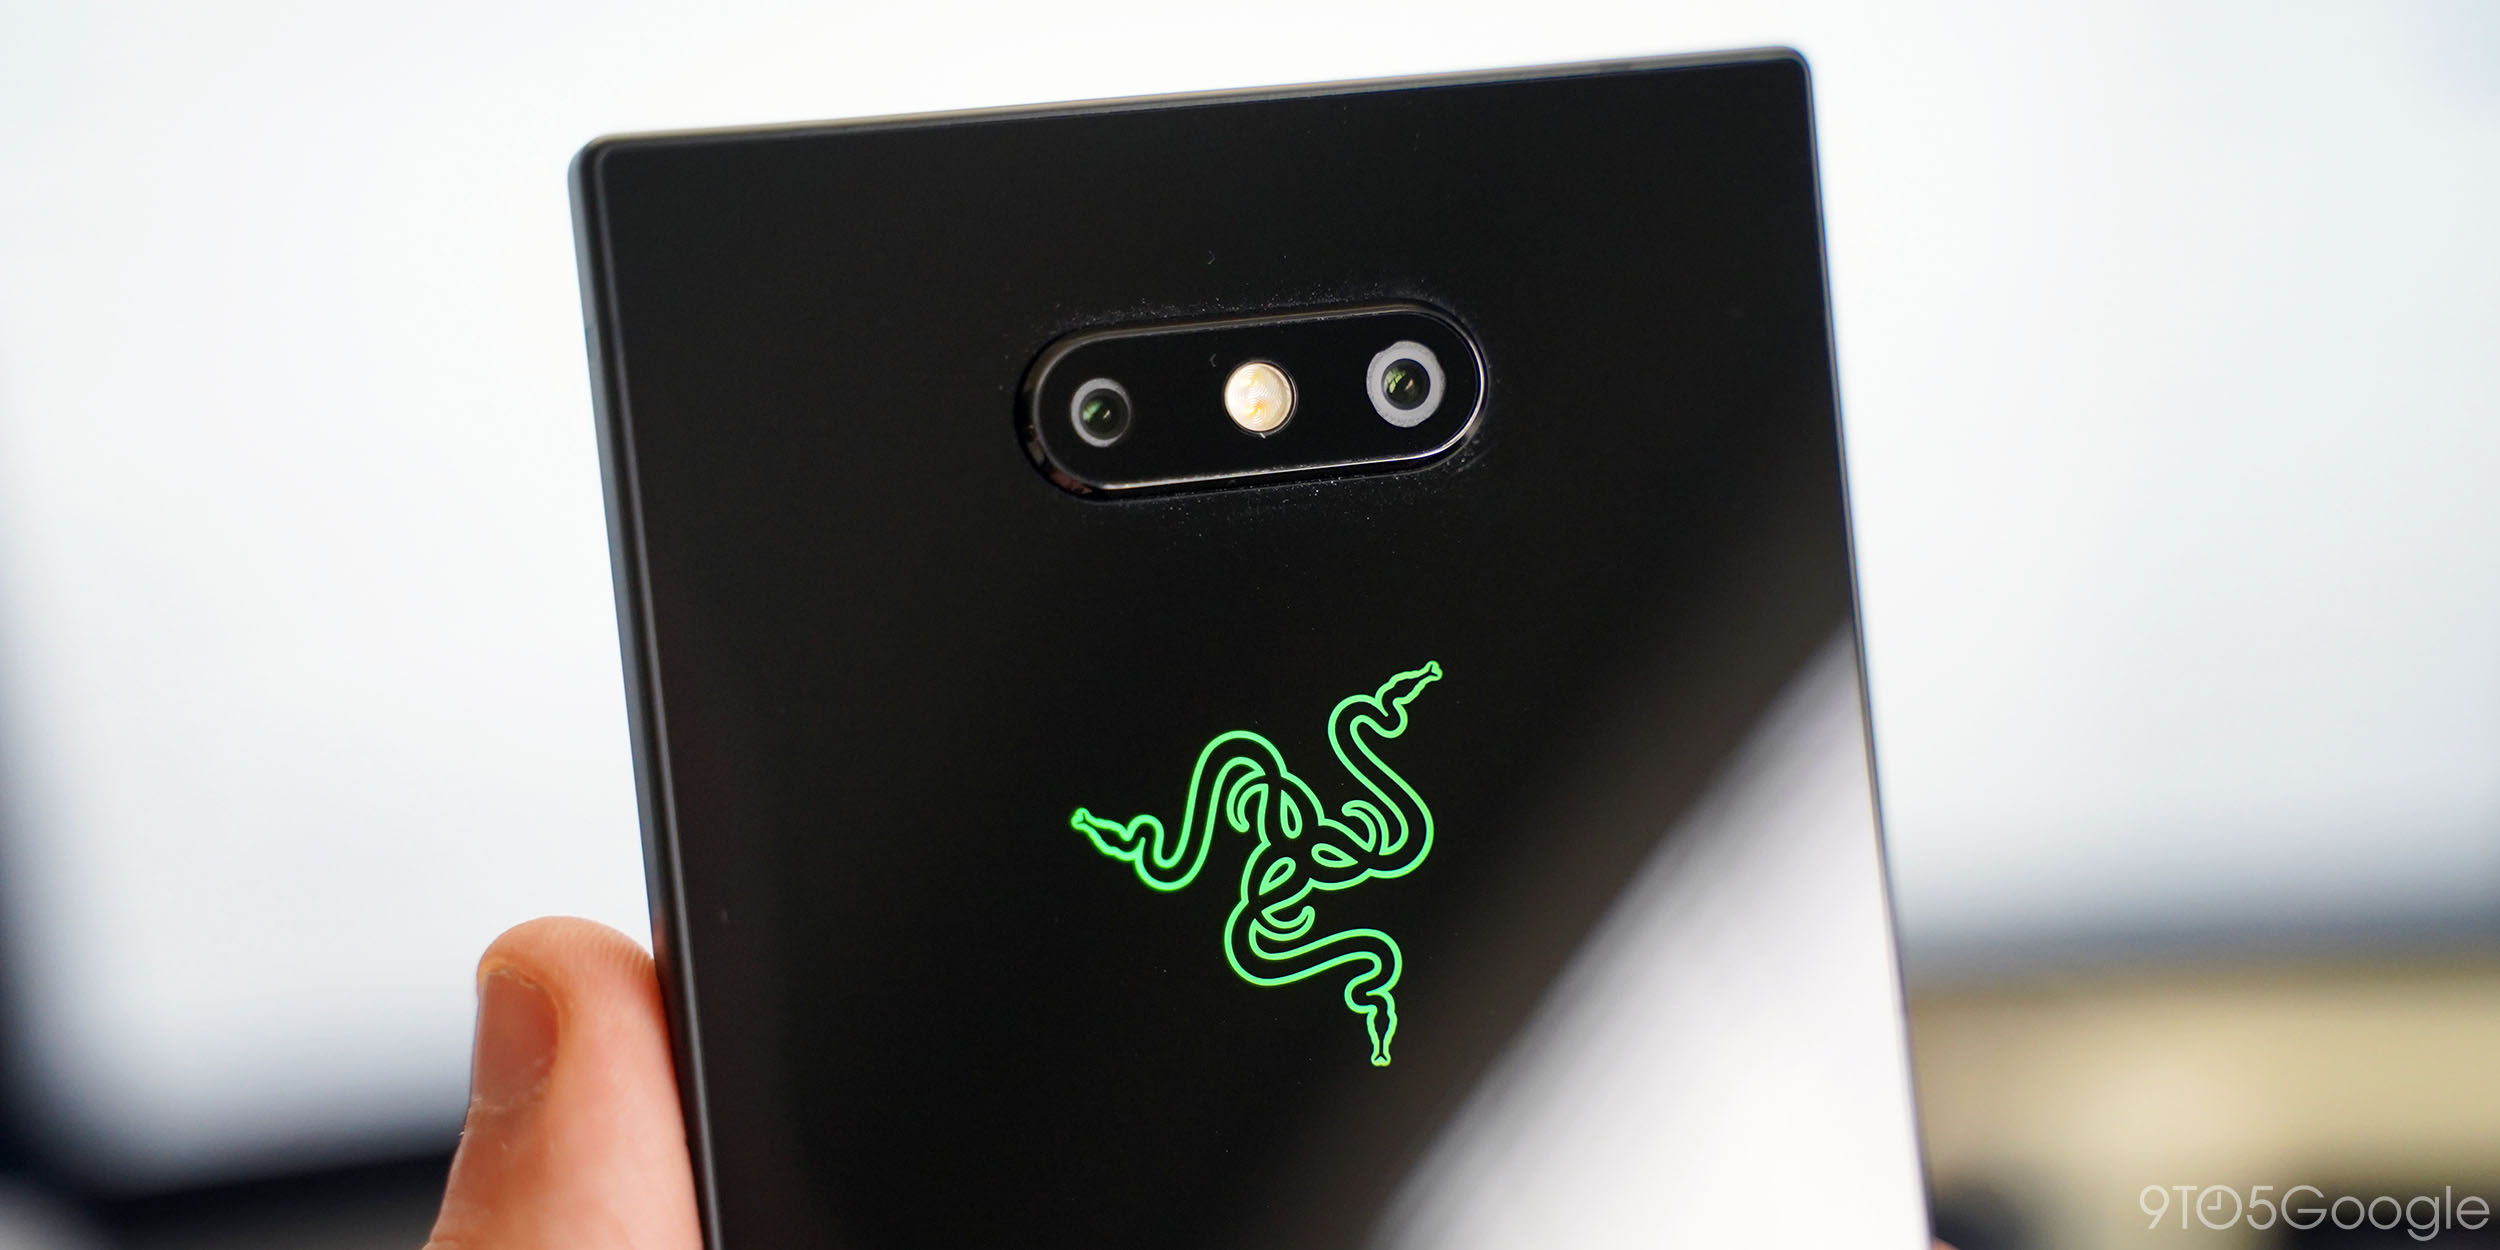 Razer pulls the plug on short-lived Forge TV, OUYA Android hardware next month